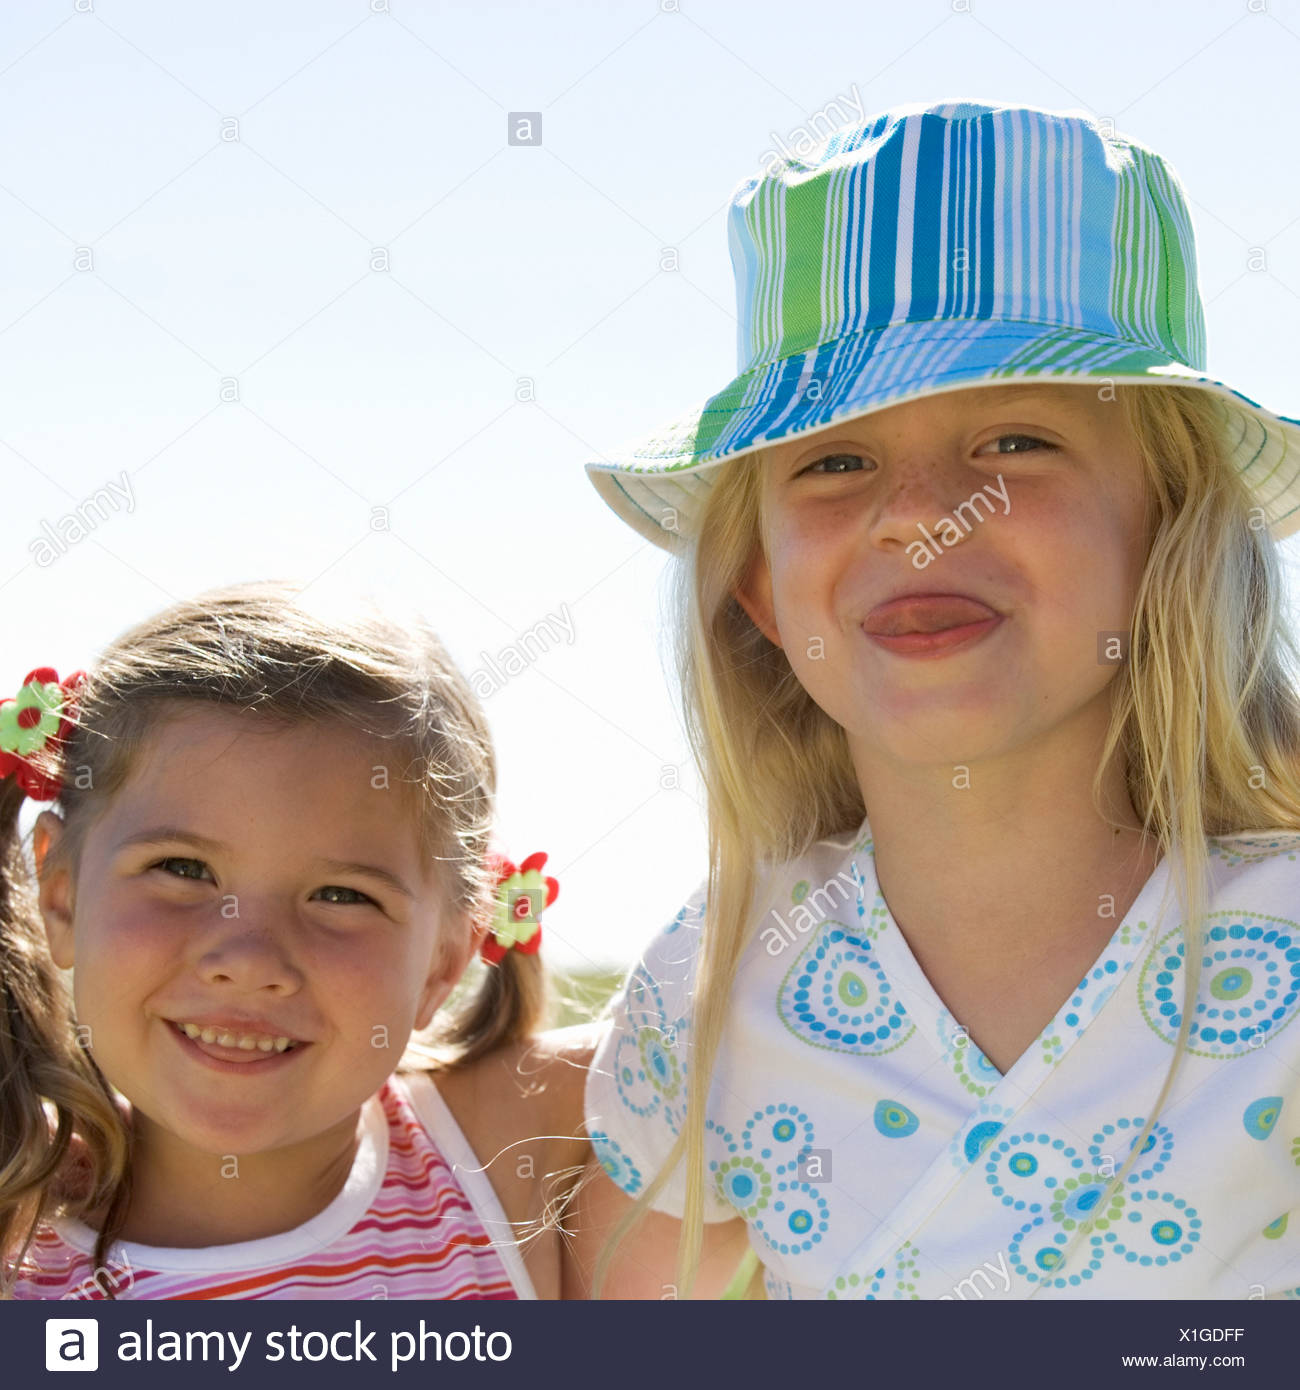 Portrait of two young girls - Stock Image